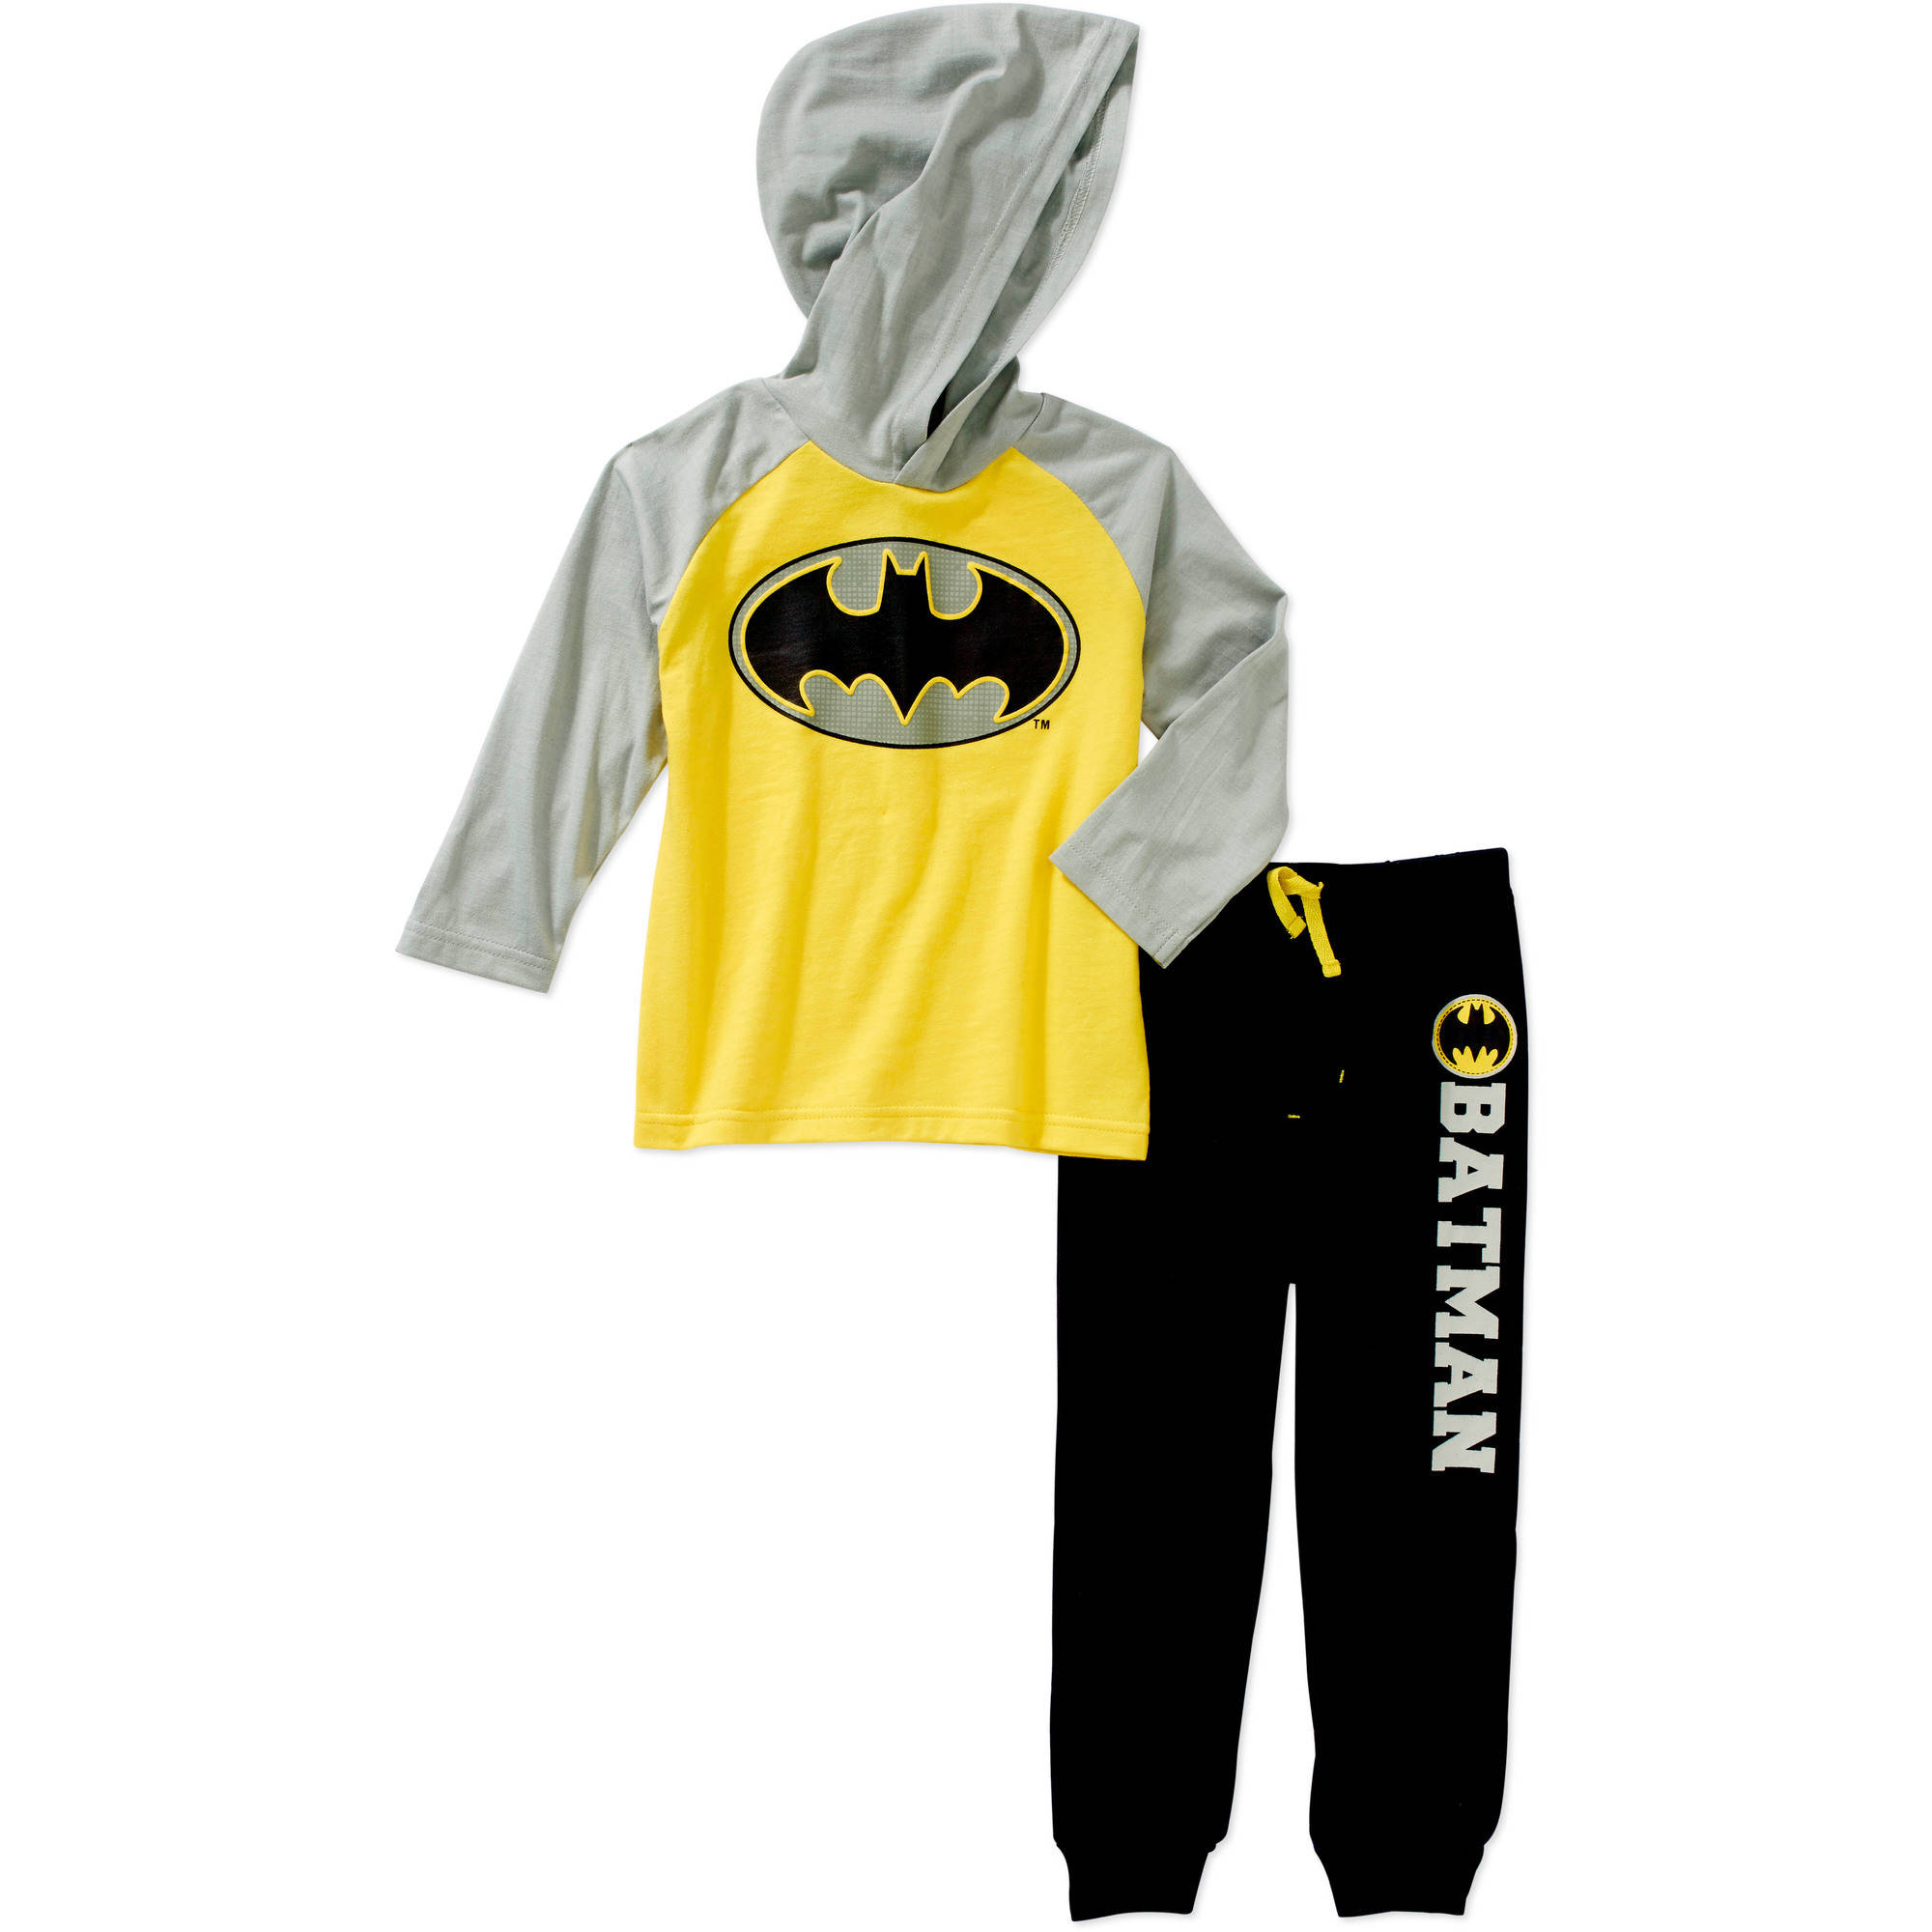 Batman Toddler Boys' Hooded Tee and Pant Set